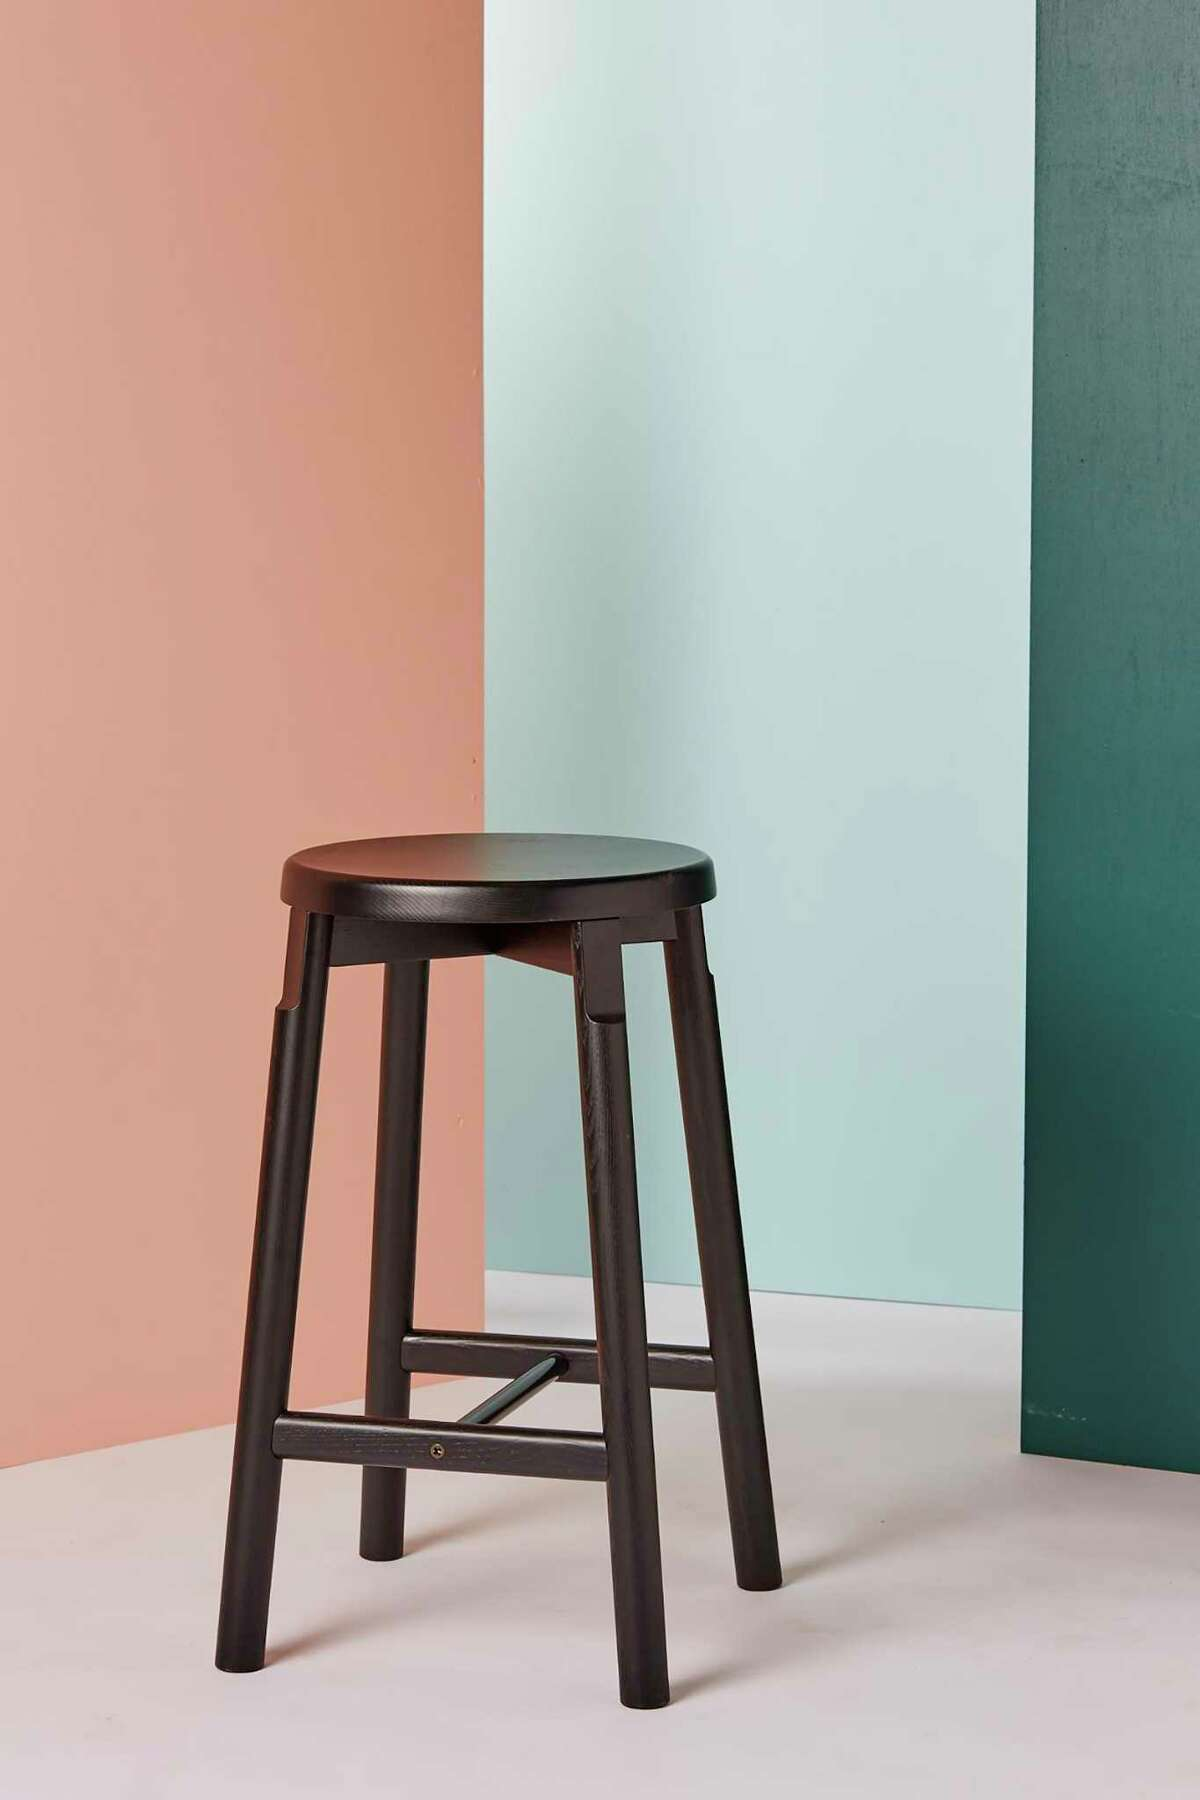 Crafted from solid ash, the barn stools developed by Oakland's Pfeiffer Lab are inspired by Shaker simplicity.